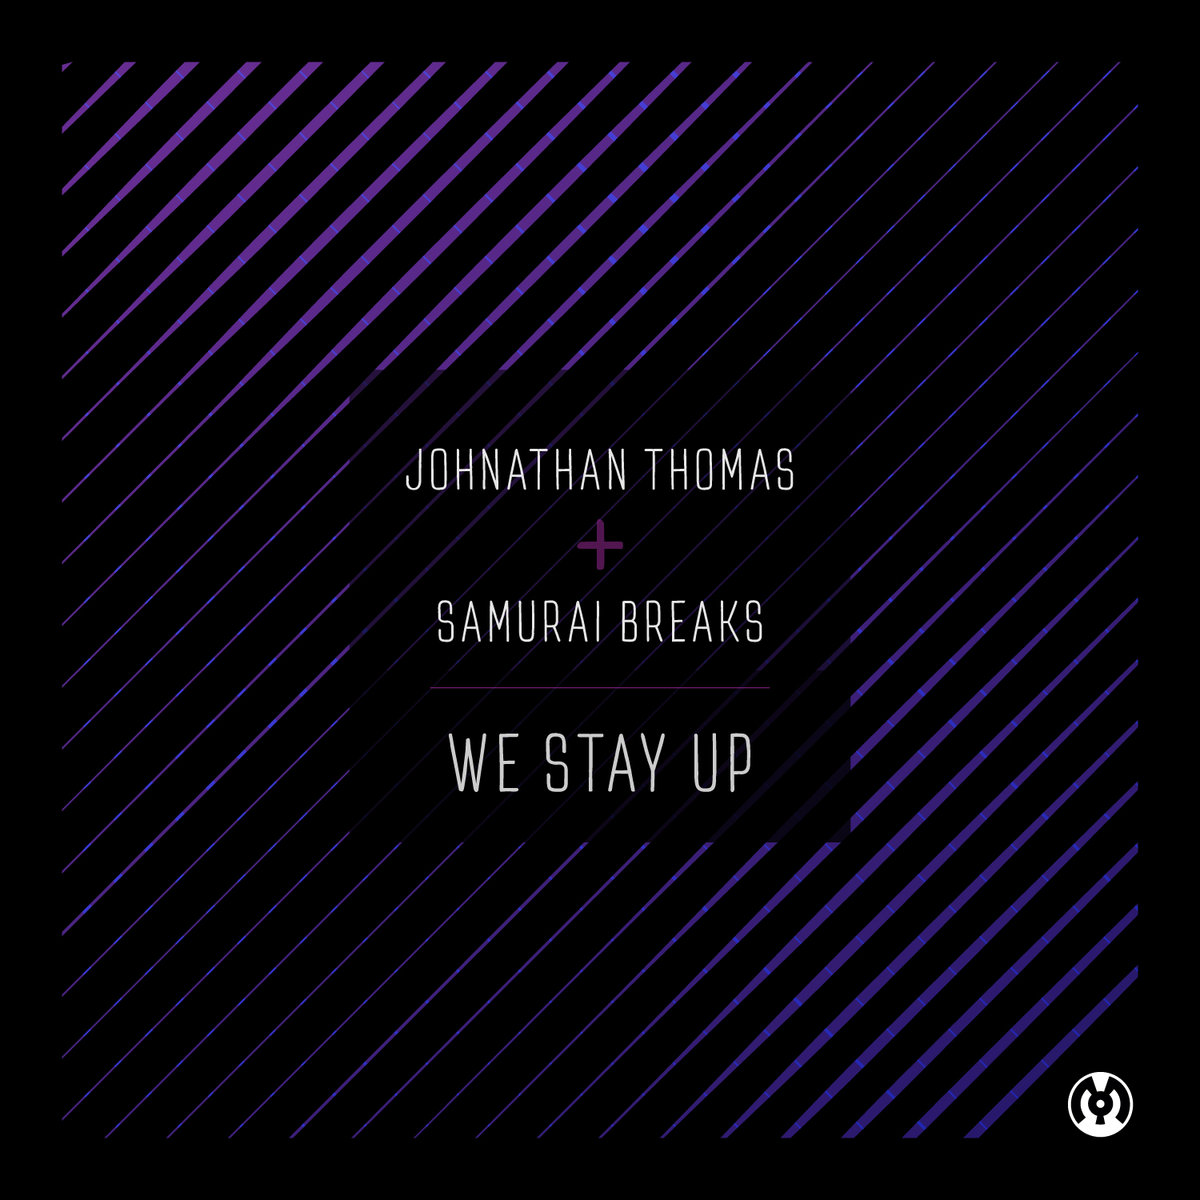 Johnathan Thomas & Samurai Breaks - We Stay Up @ 'We Stay Up' album (electronic, dubstep)